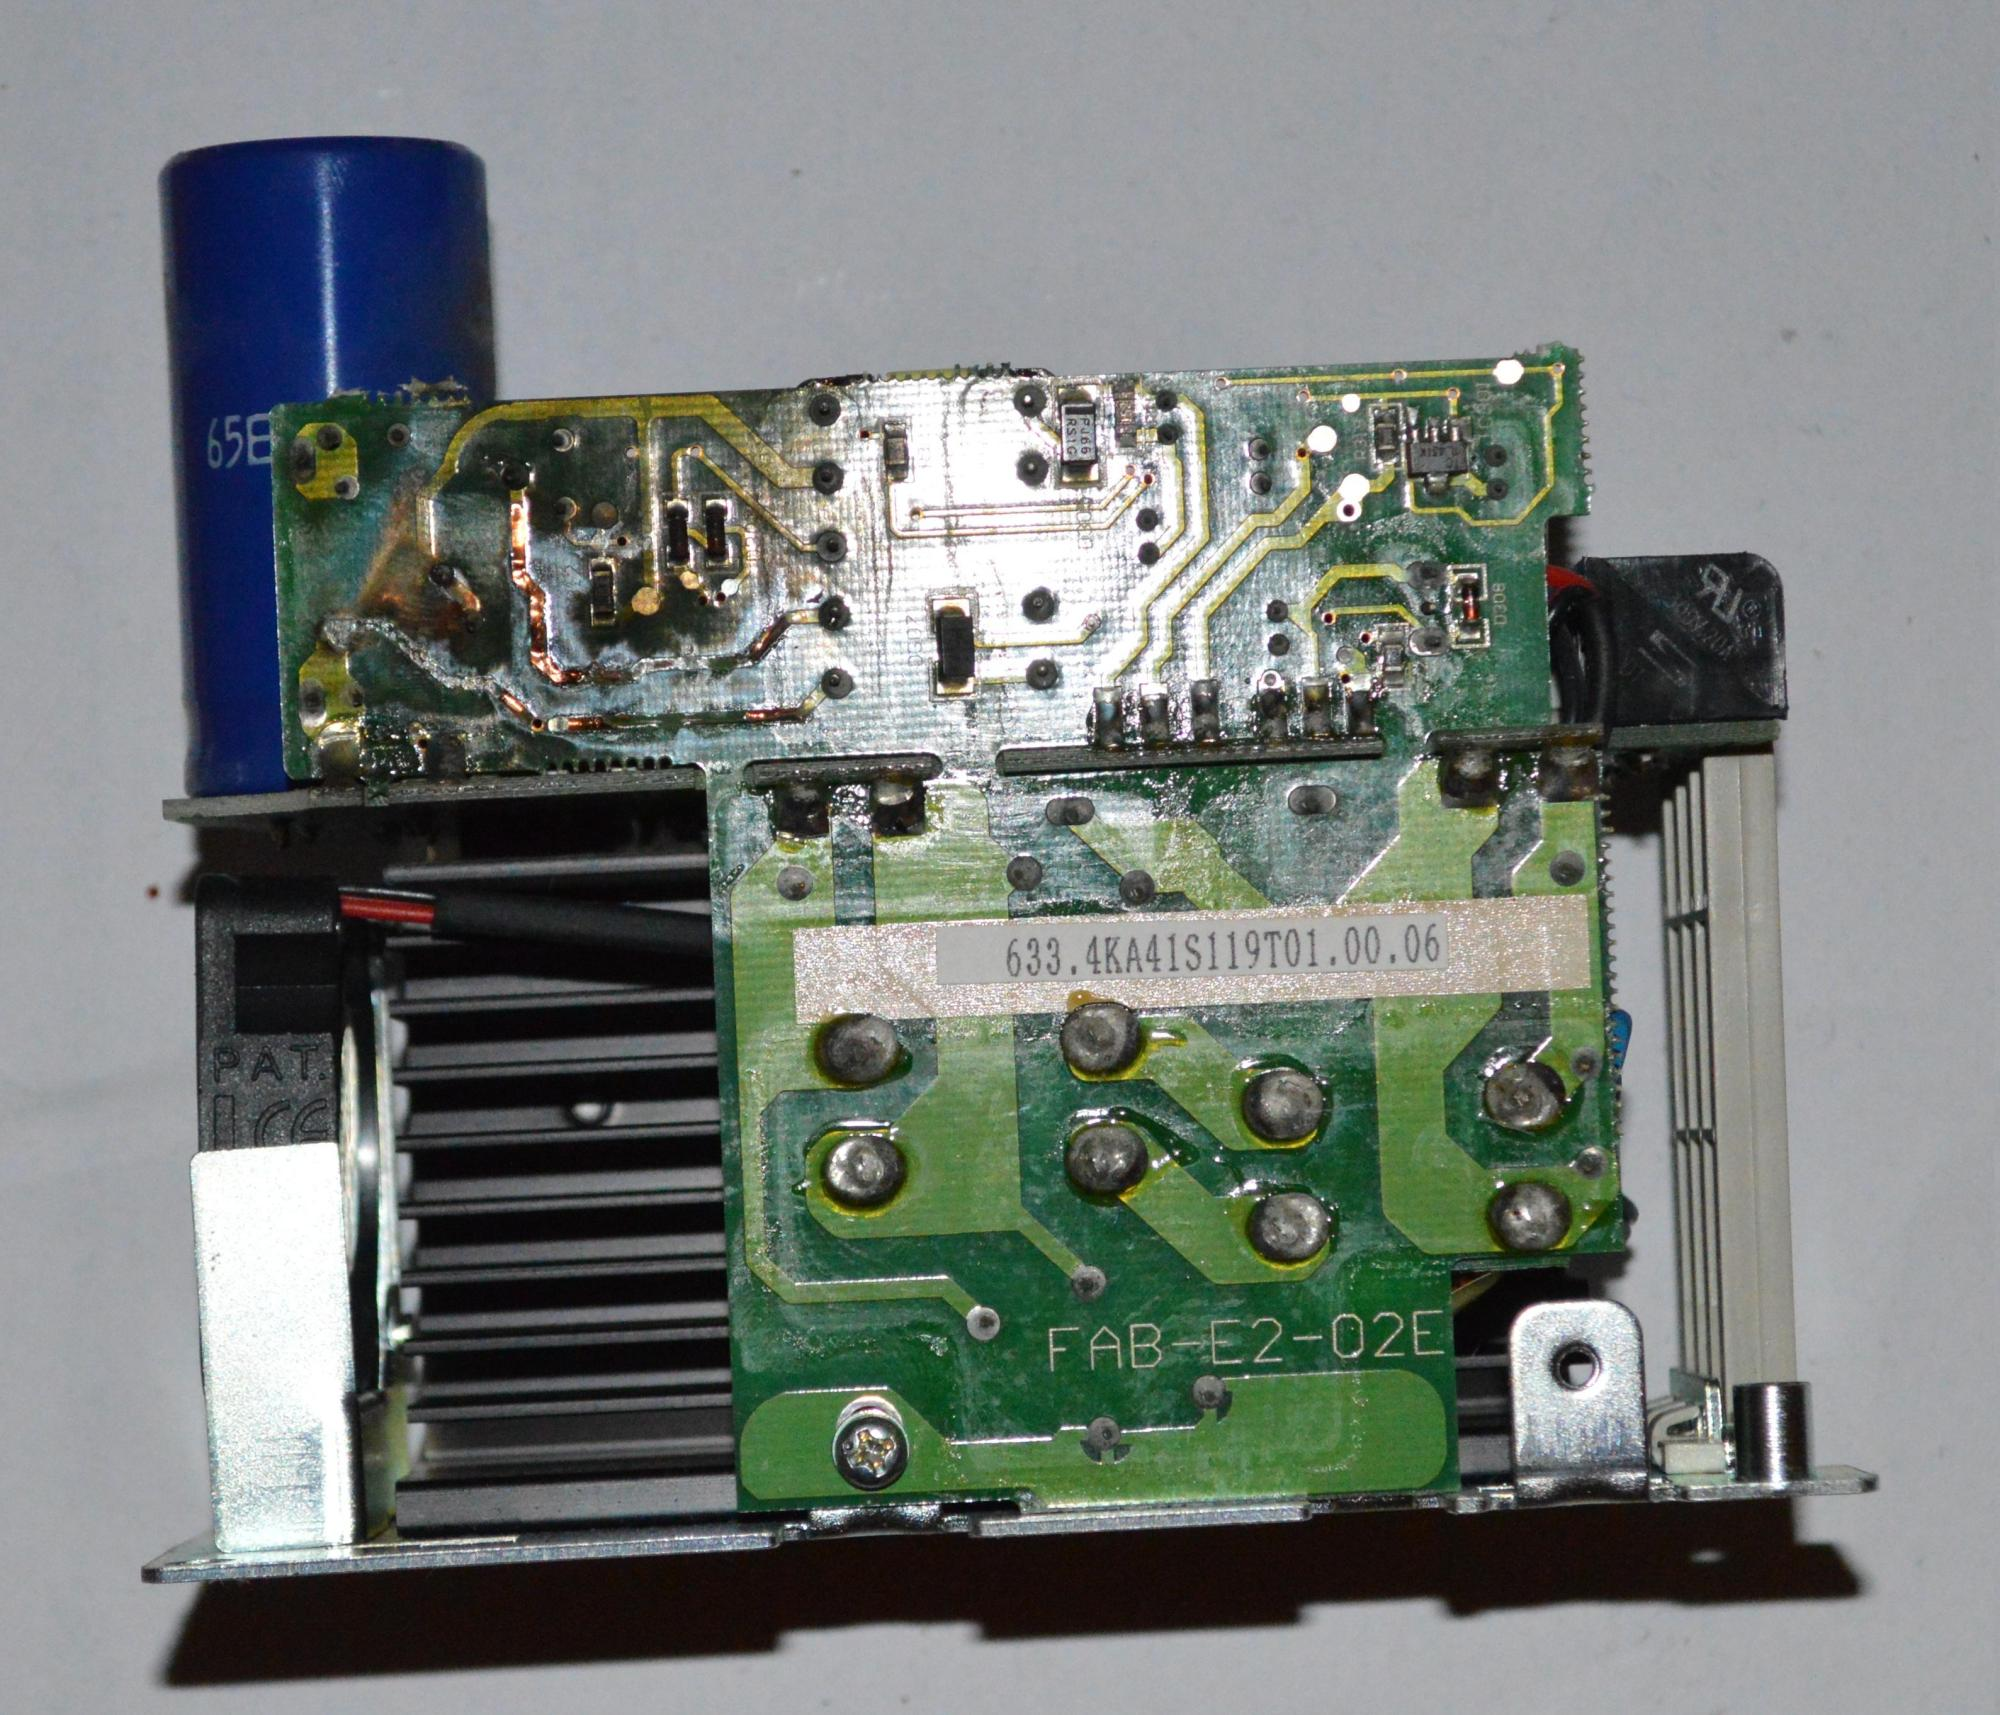 The circuit board is clearly damaged by the heat from some kind of component failure.